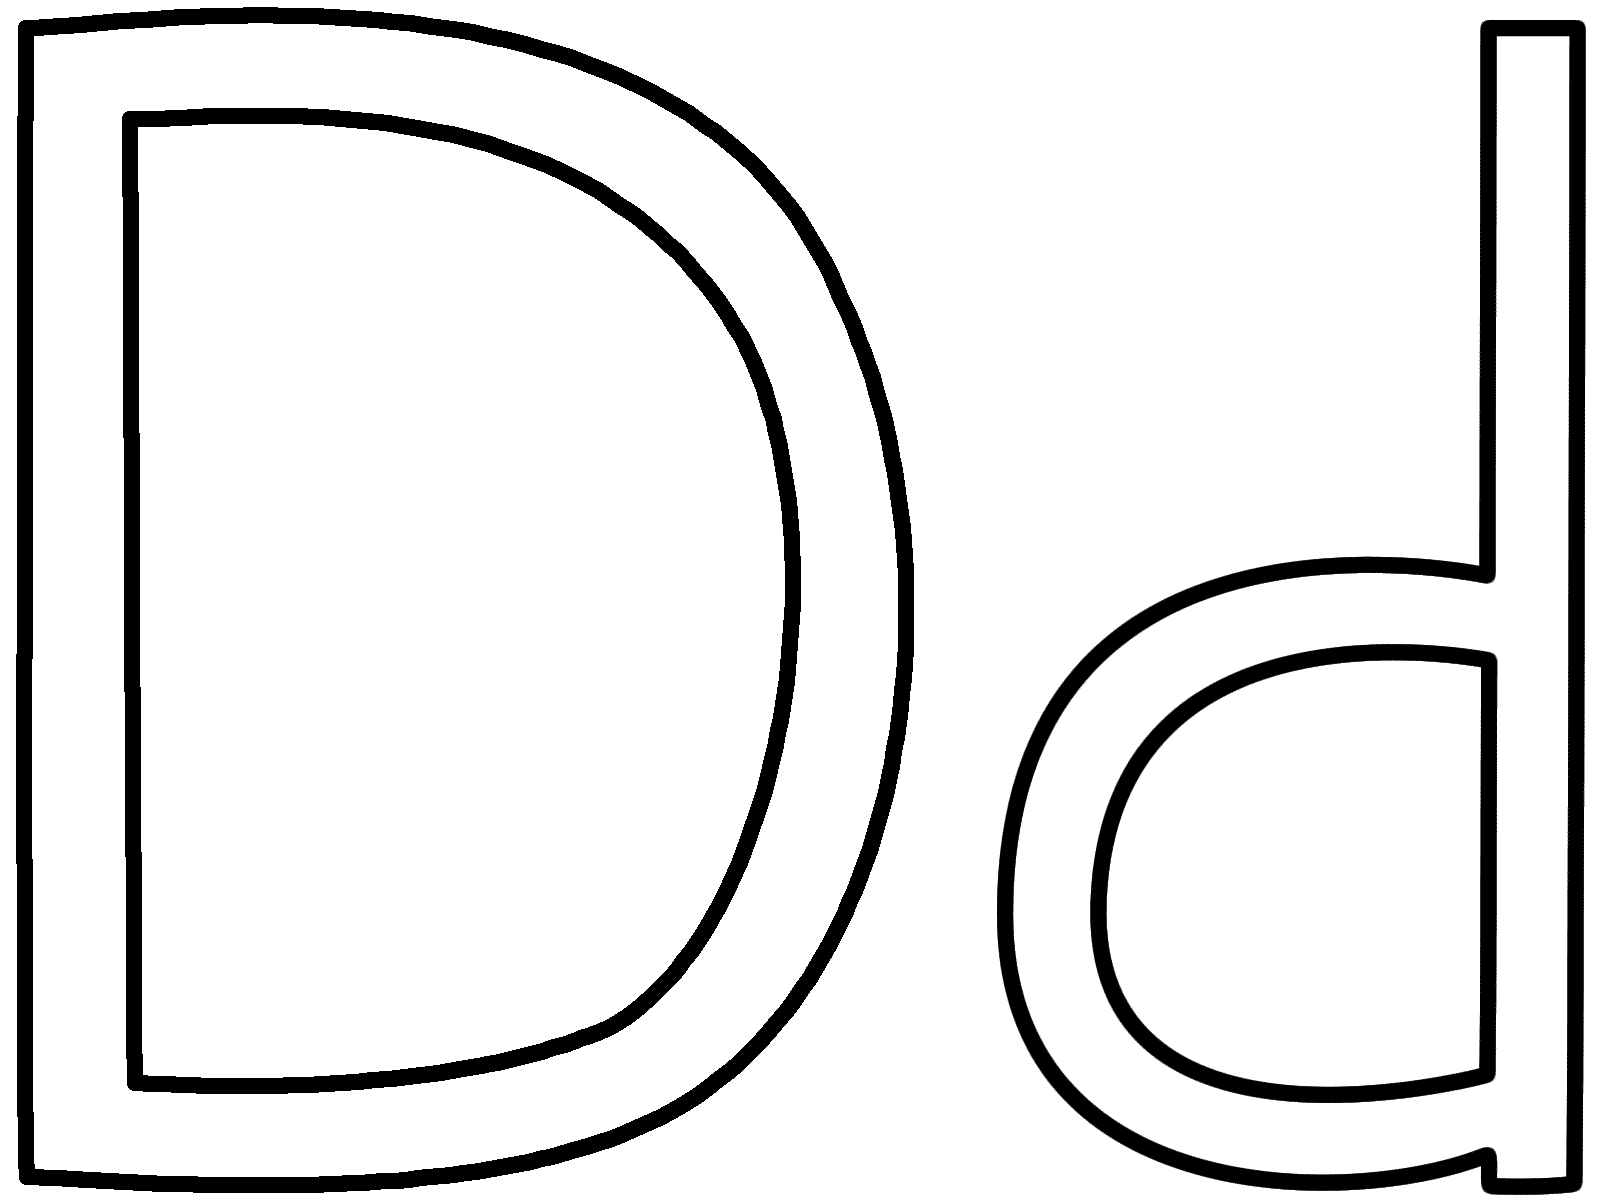 letter d coloring page alphabet - Big And Small Coloring Pages